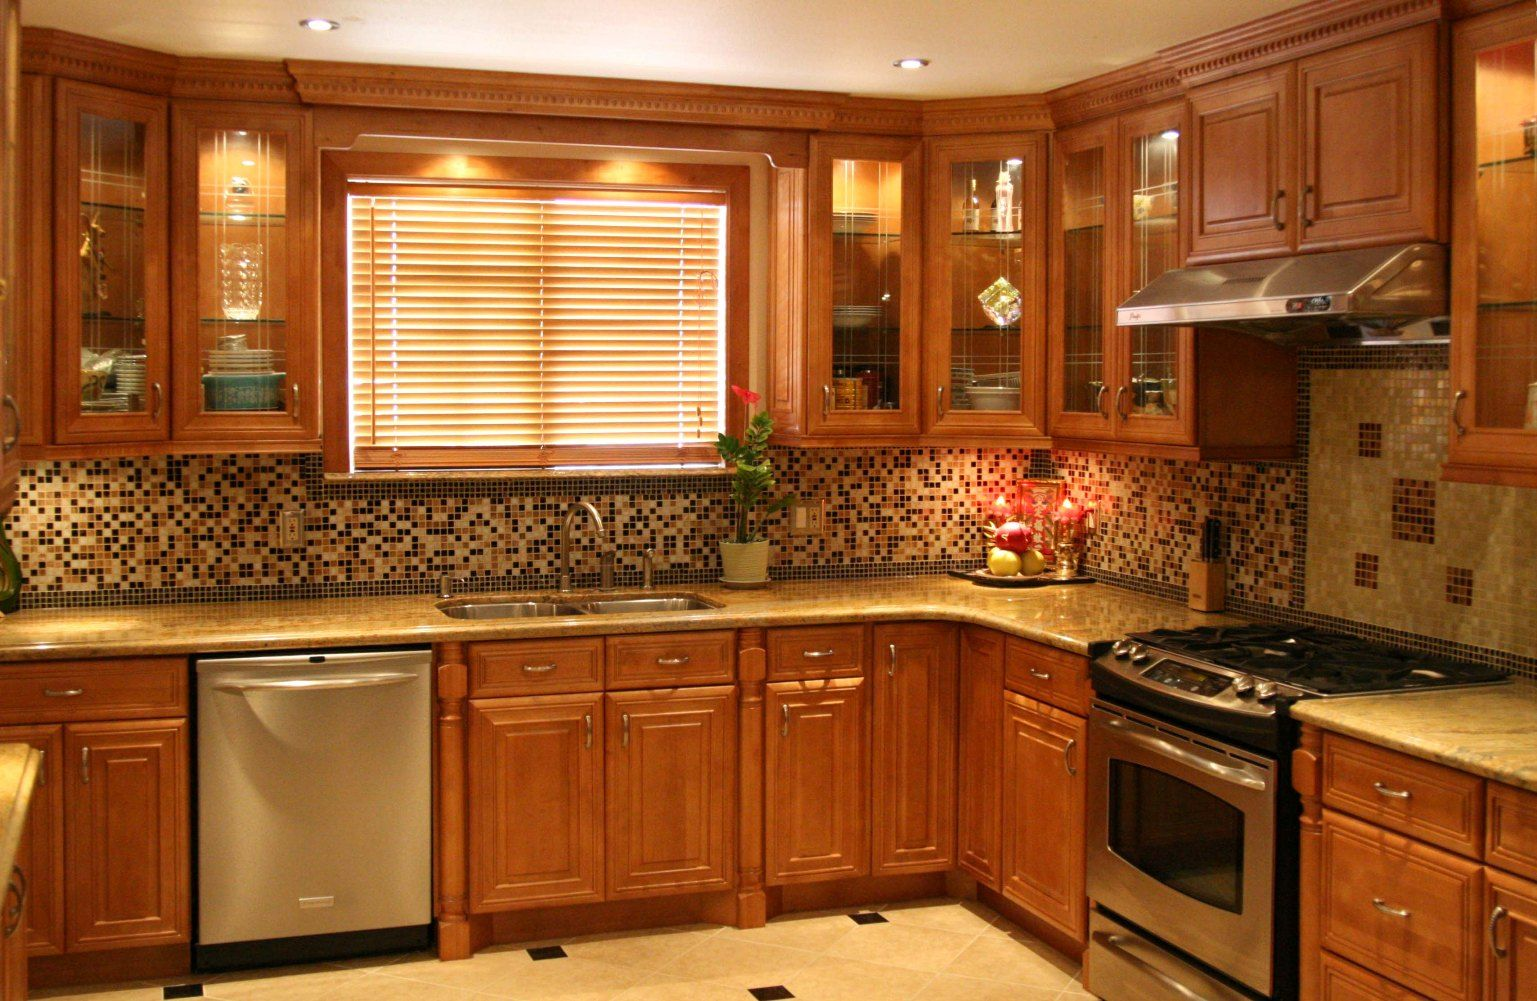 Cabinets Design For Kitchen 17 Best Images About Kitchen On Pinterest Cabinet Design Green